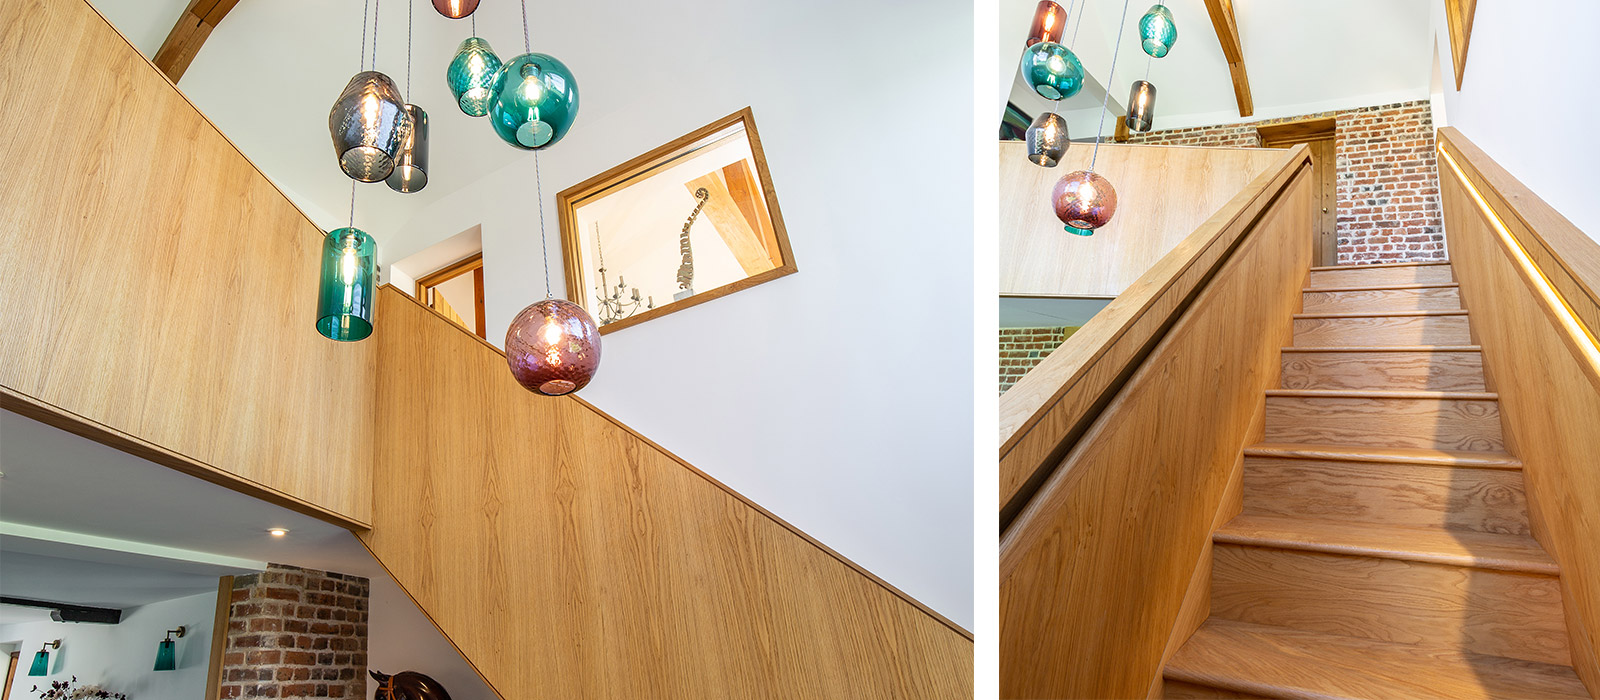 gyd architecture | bespoke lighting and staircase